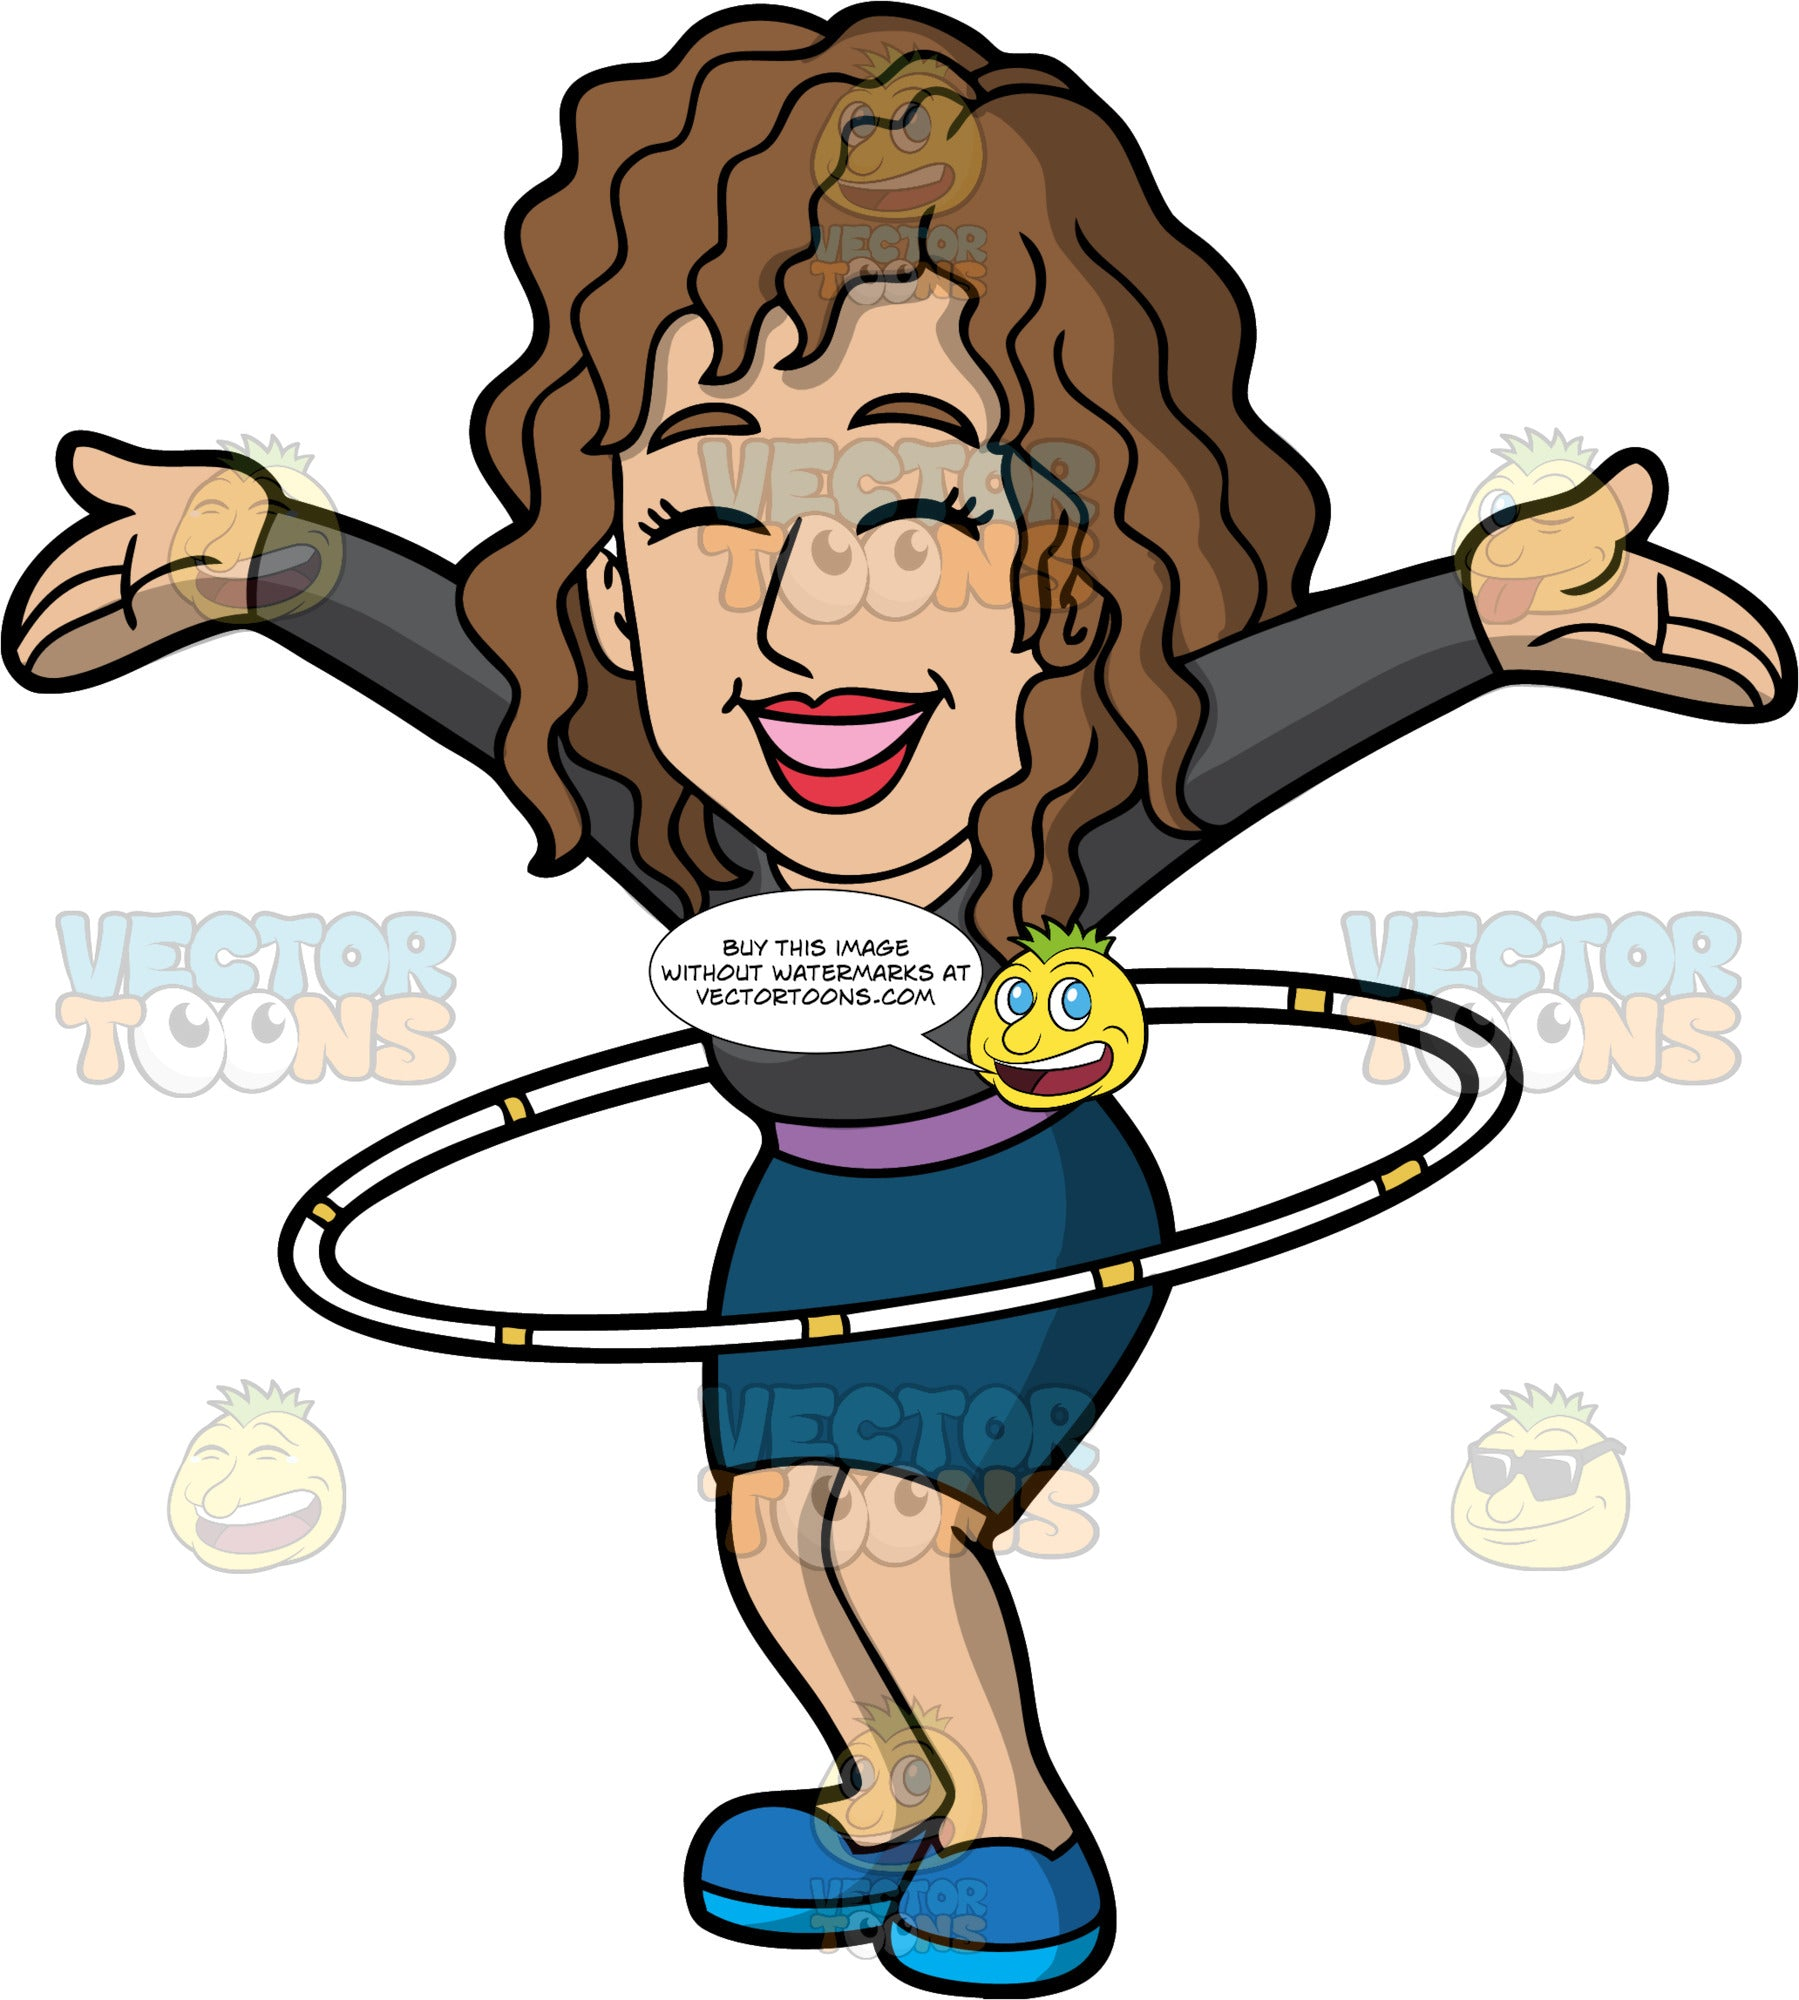 A Joyful Woman Twirling A Hula Hoop. A woman with brown hair, wearing a black long sleeve blouse, dark teal skirt, purple belt, blue shoes, shuts her eyes and smiles in delight, as she raises her arms sideways while twirling a white with yellow hula hoop around her waist